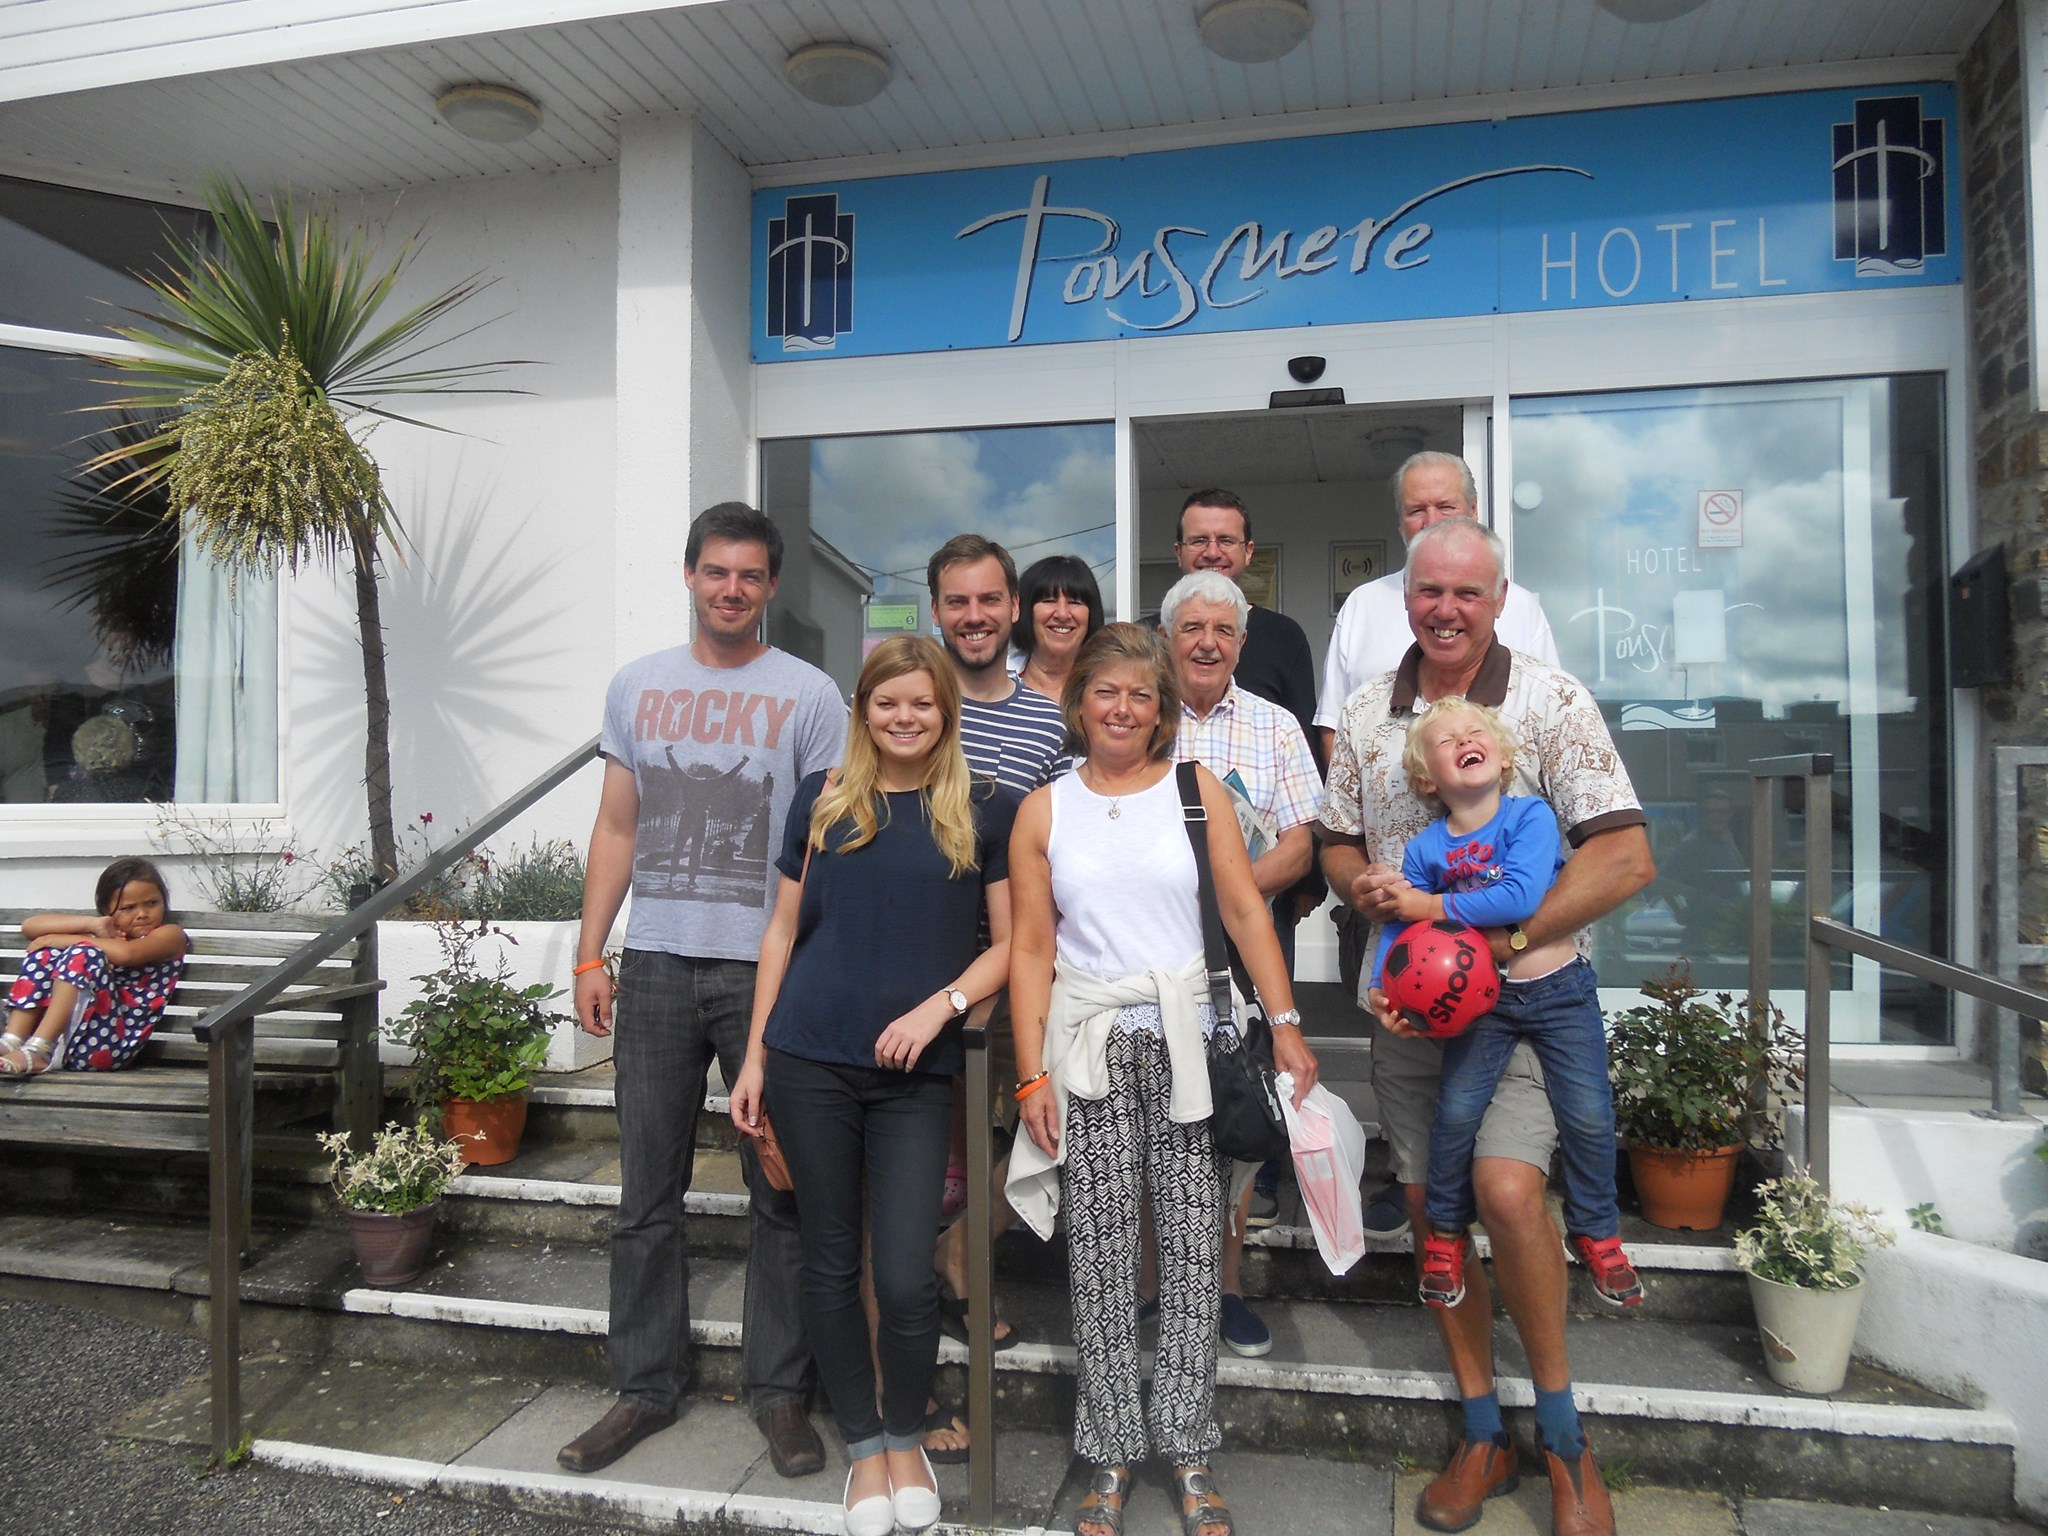 The group outside The Ponsmere Hotel